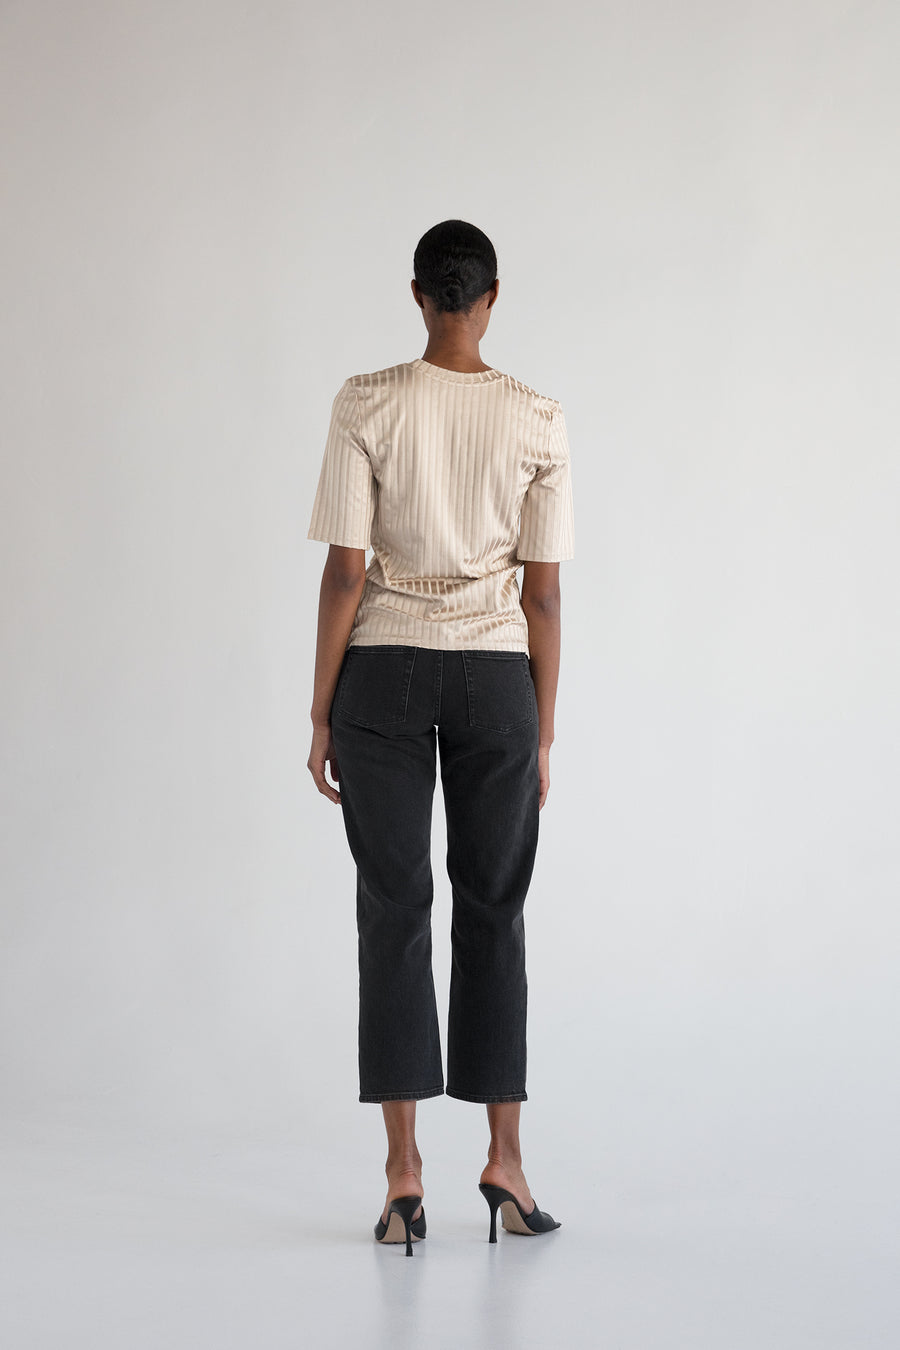 PAIR TOP - BEIGE